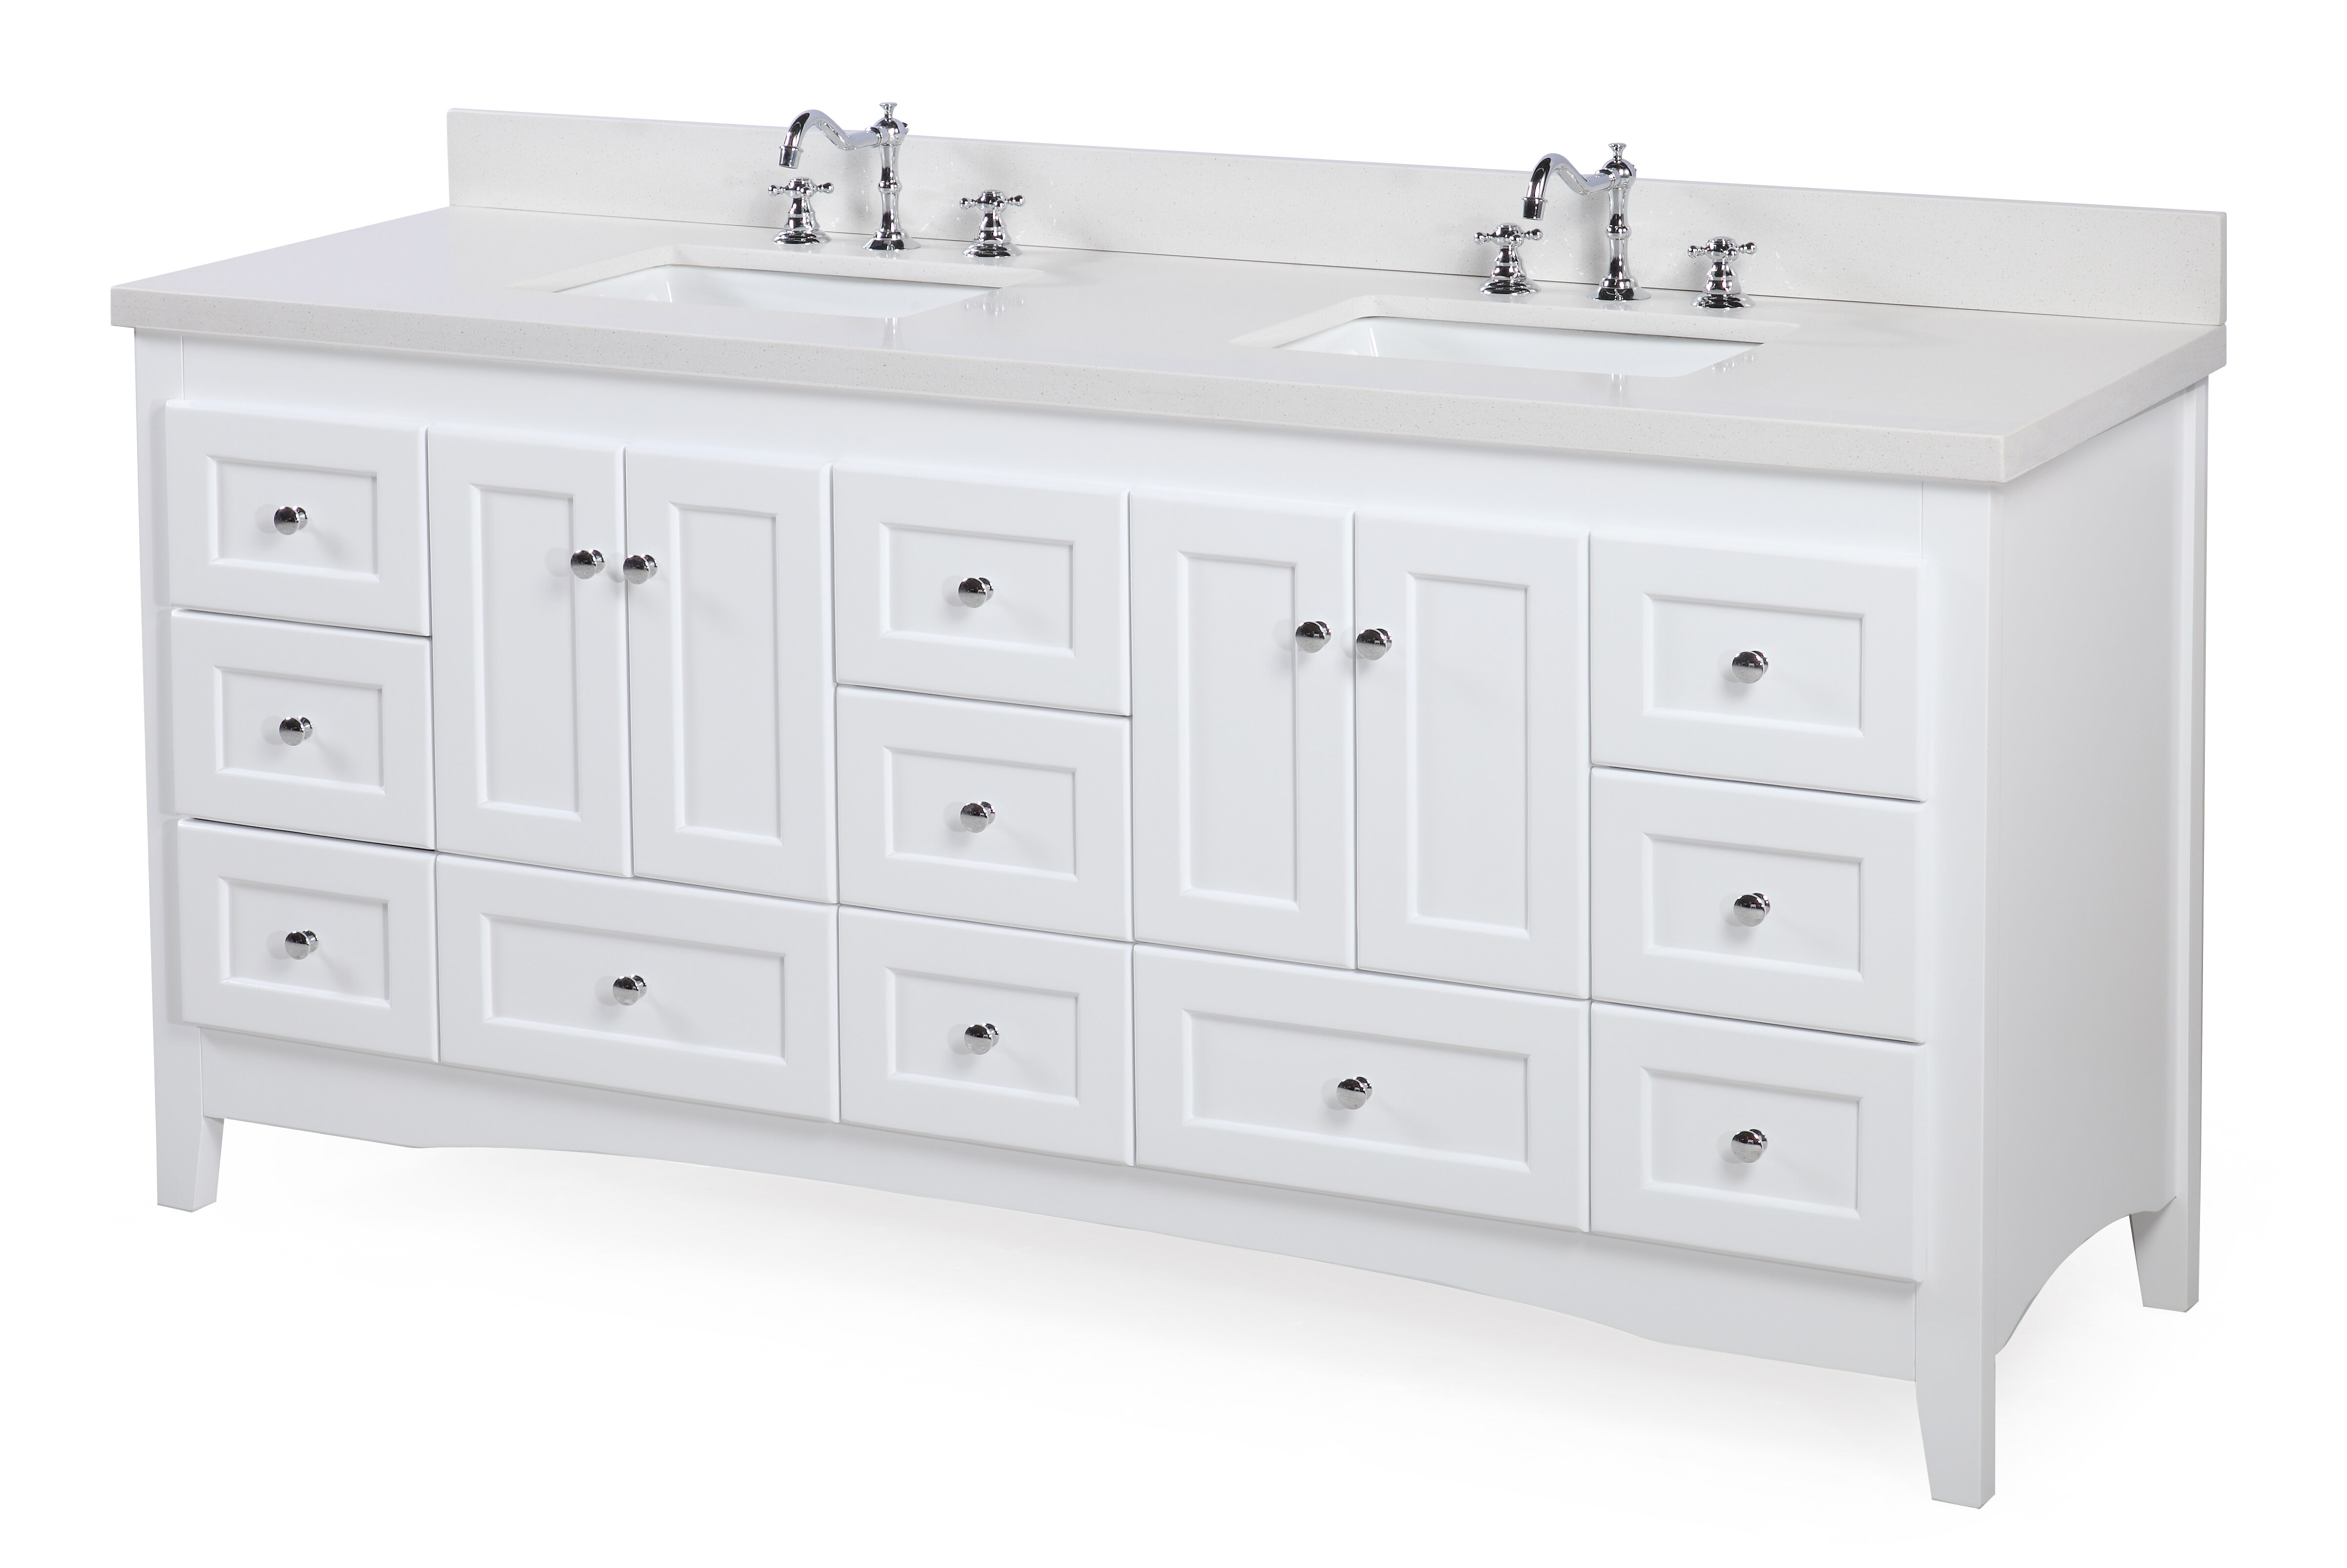 w set kitchen jazz drawers cabinet white product front drawer base